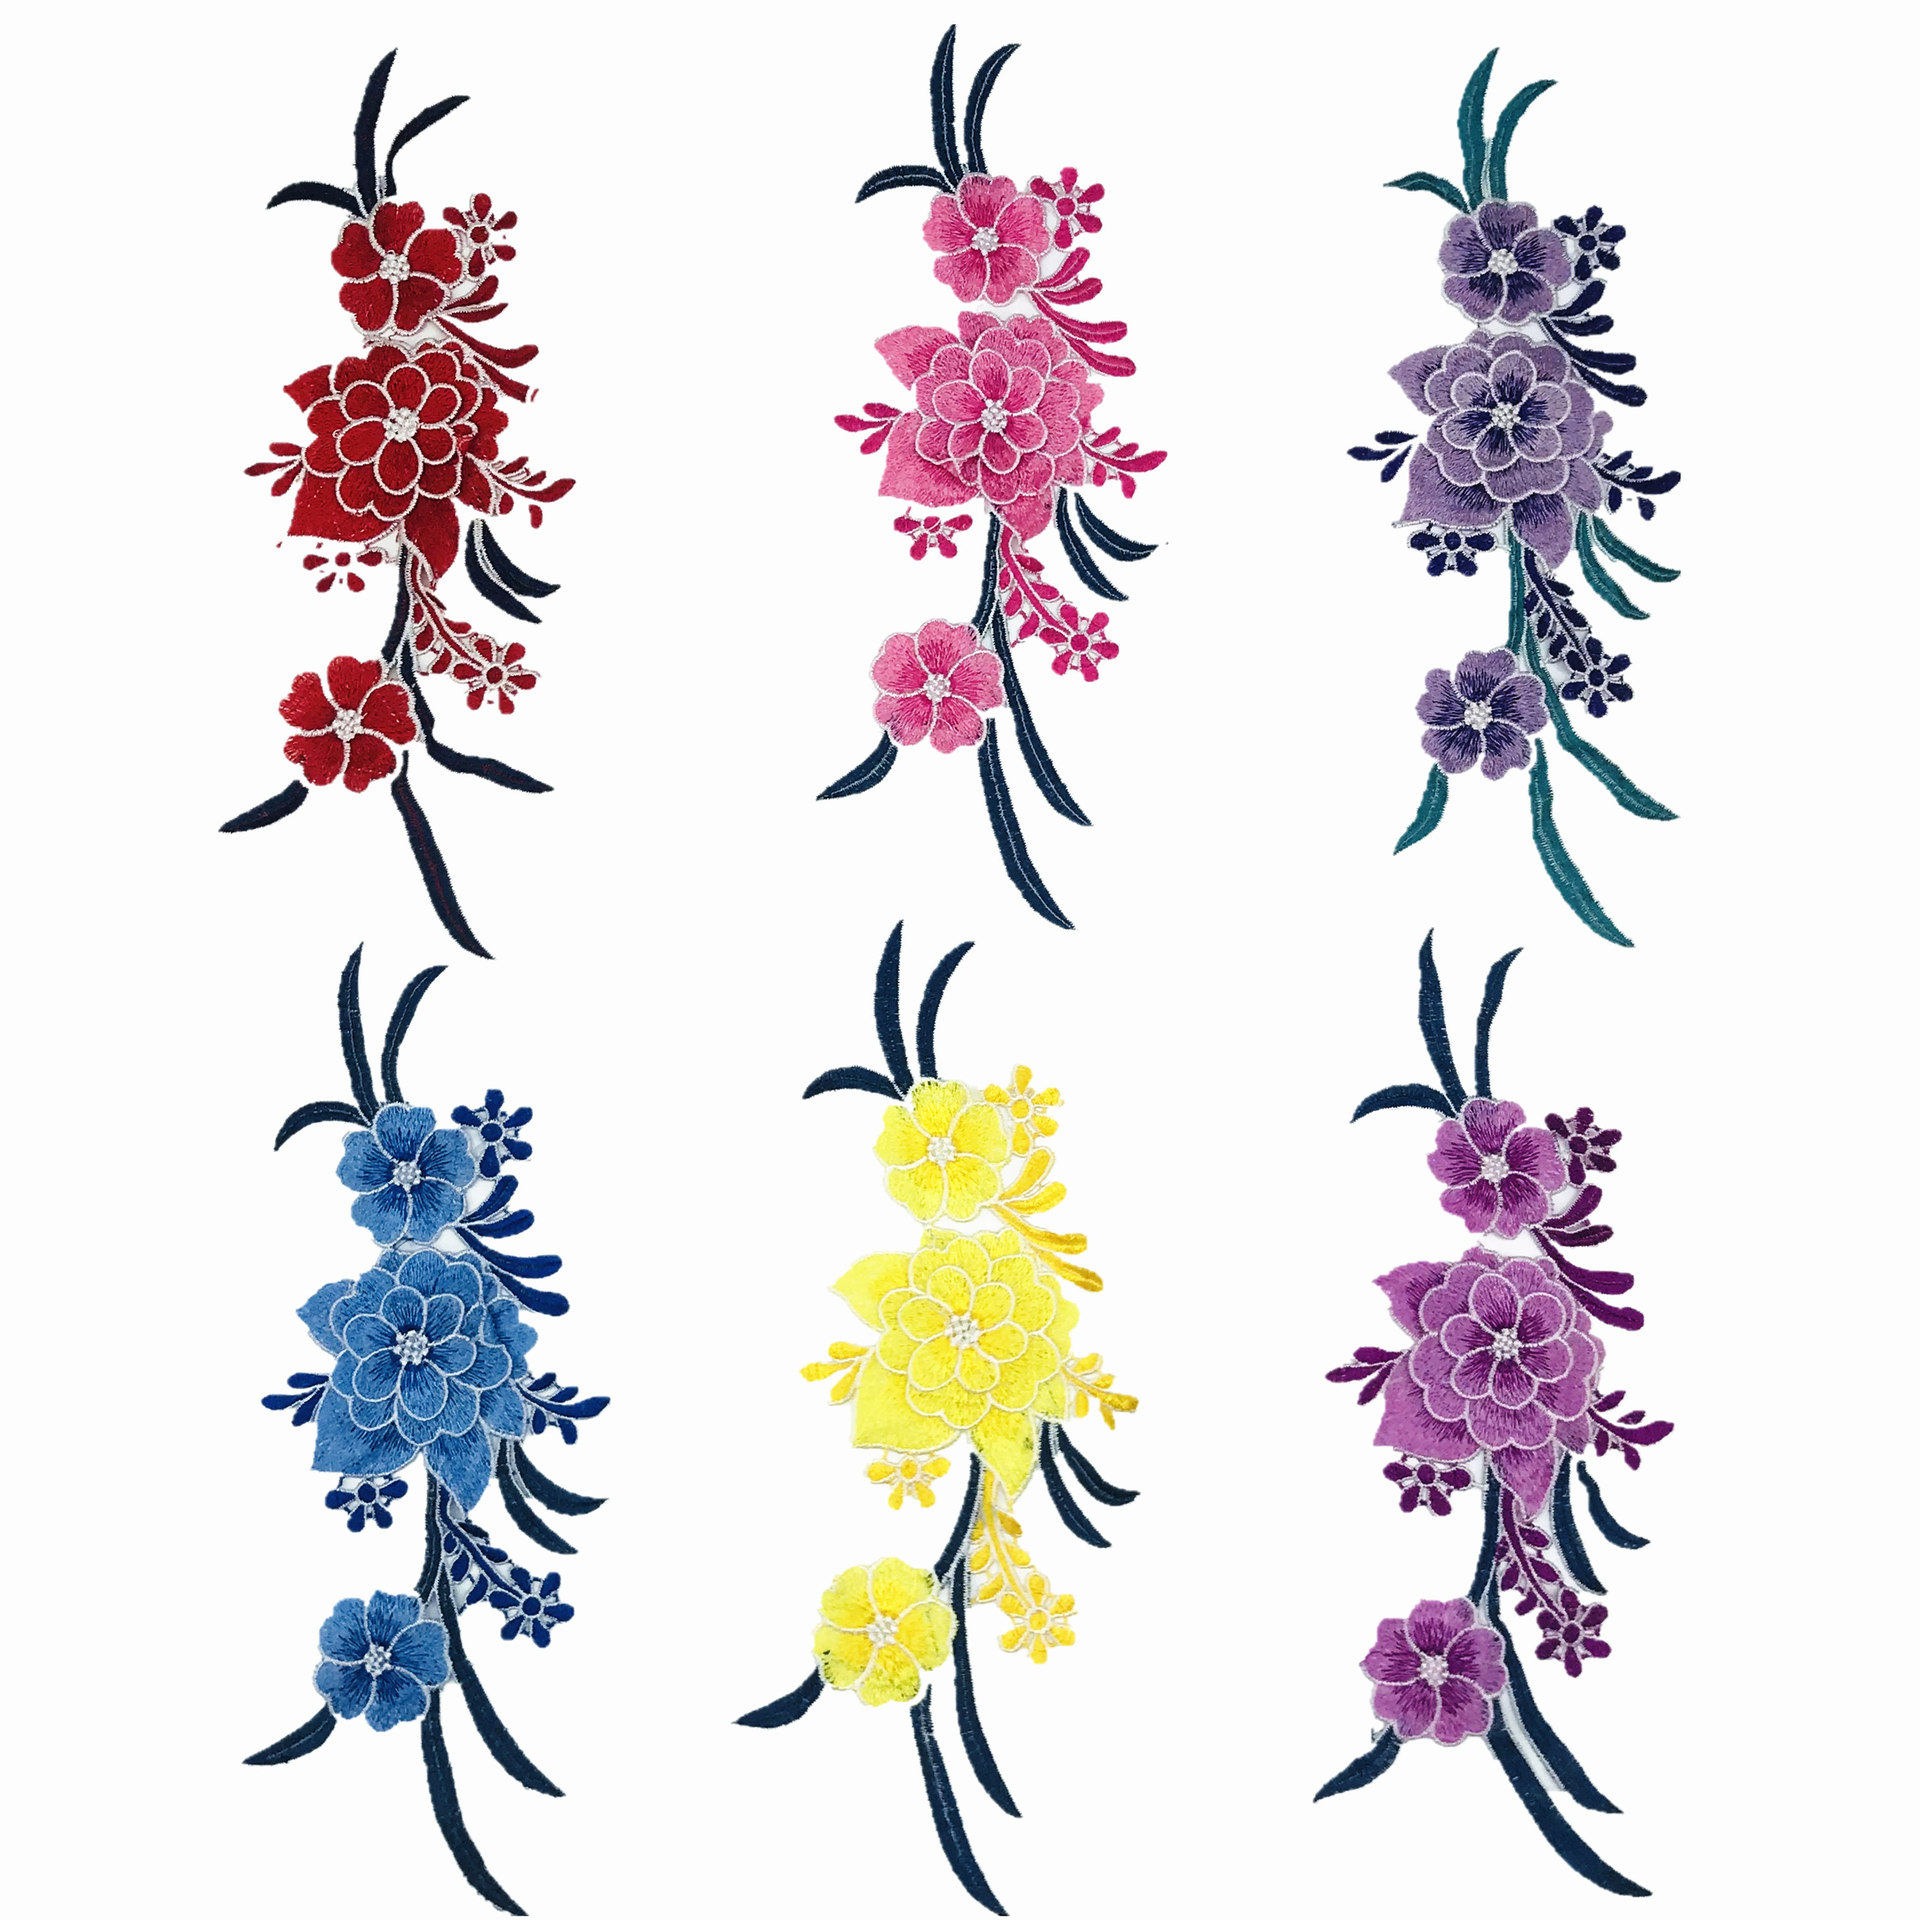 PatchDIY Applique Water Soluble Embroidery  Costume Decoration Dimensional Colorful Decals Applique Accessories